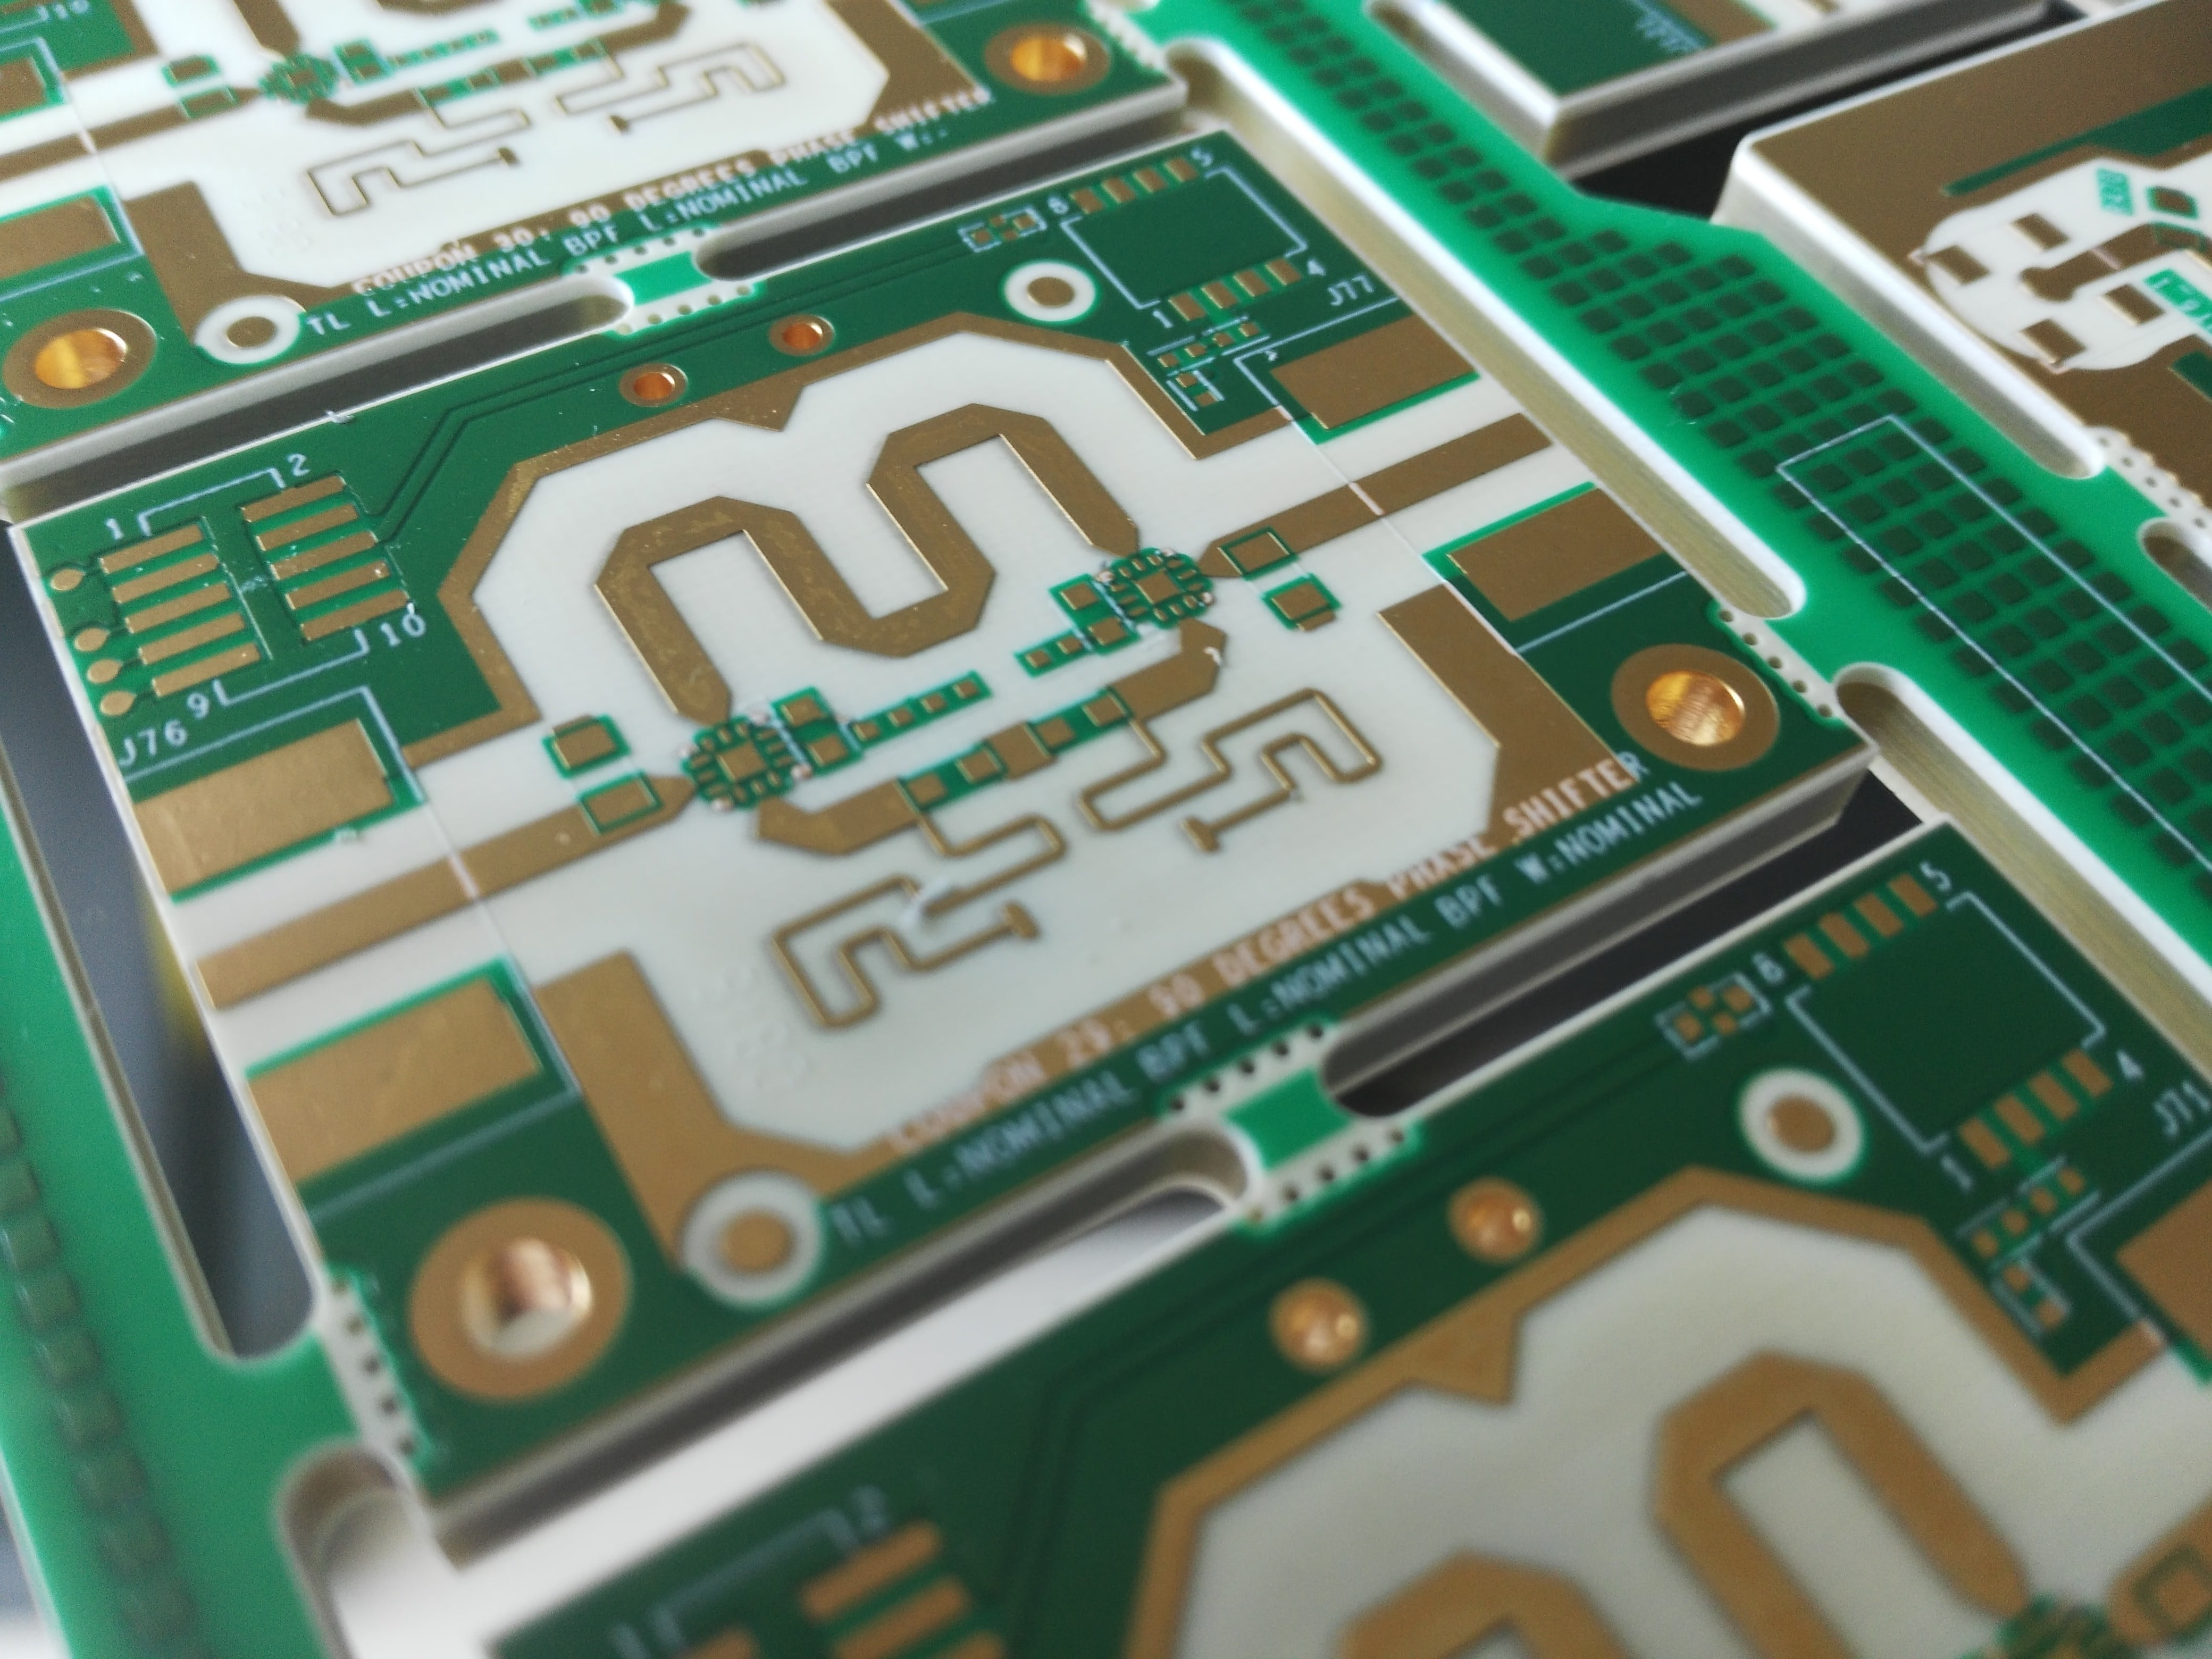 Sun & Lynn: Rigid Flex PCB Supplier for Your Consumer Level High Volume Applications to High End Automotive and Medical Instrumentation Applications